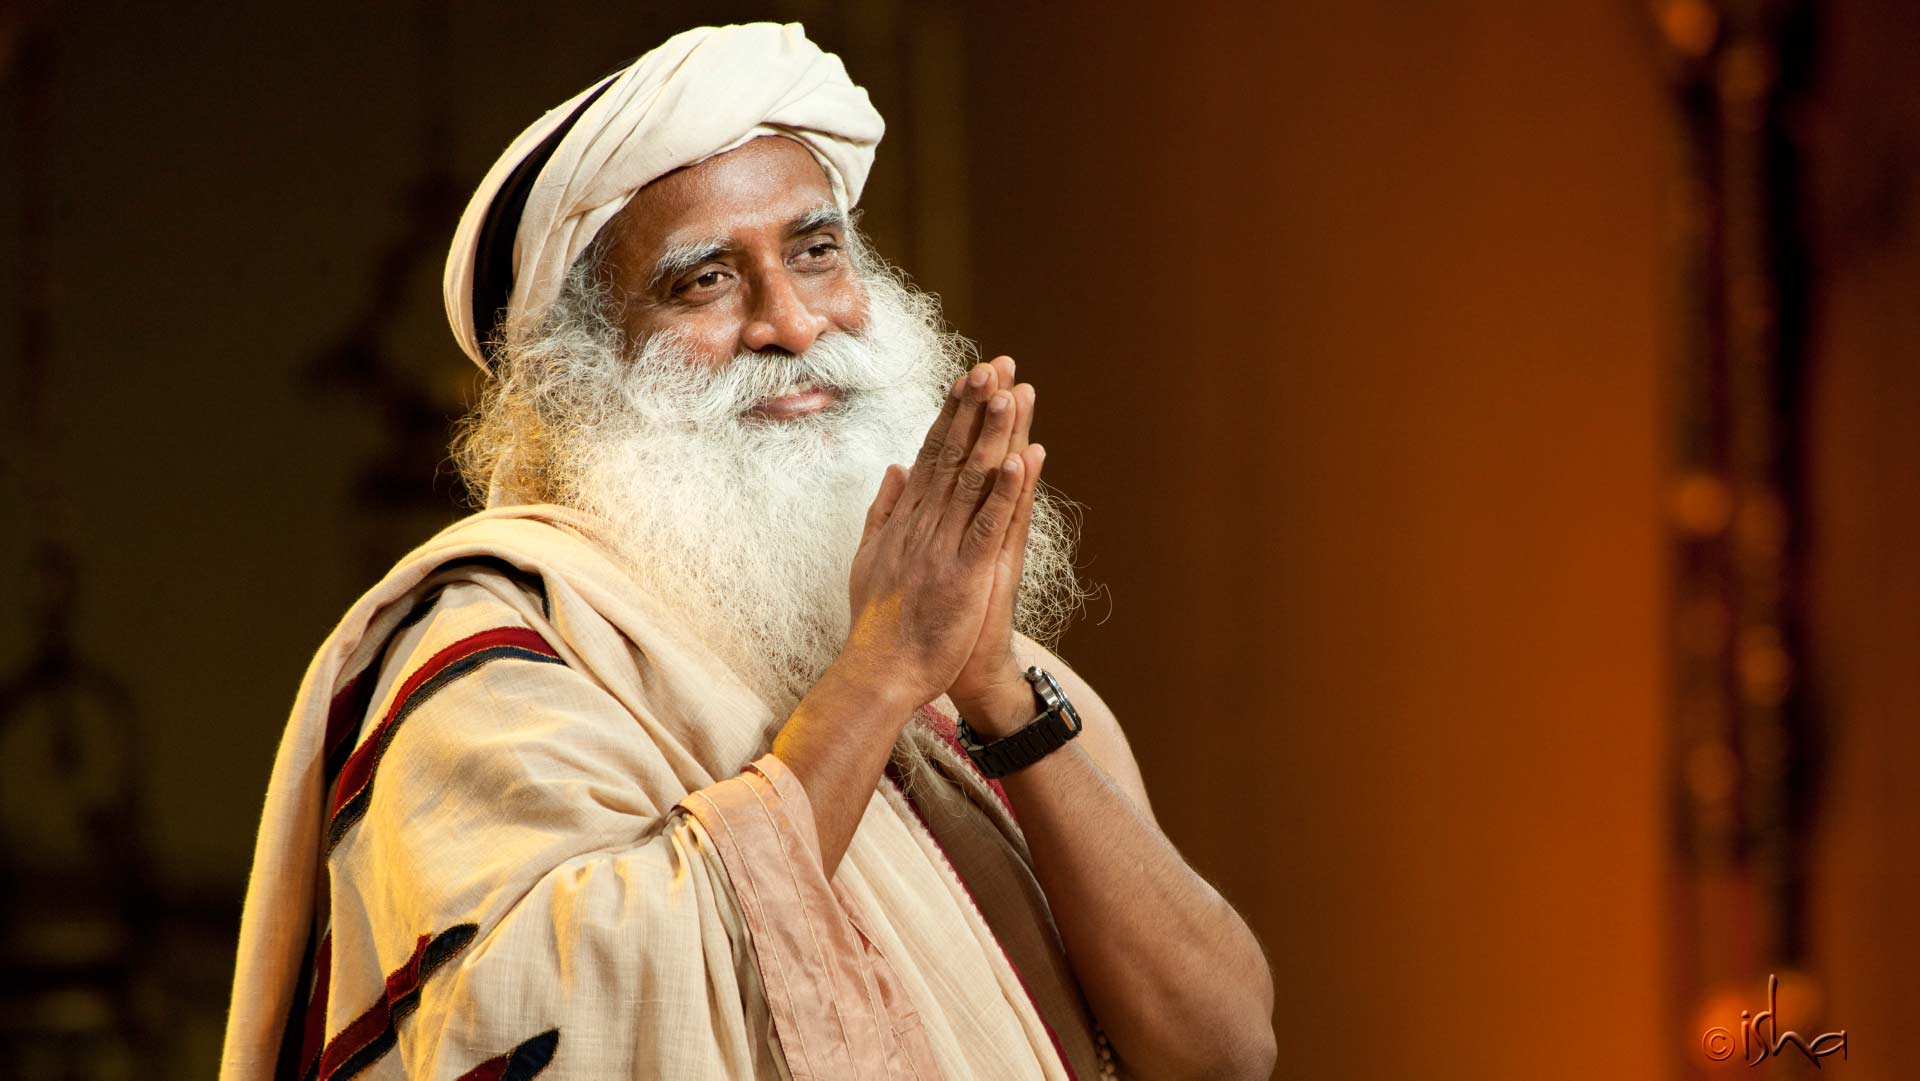 story of hampi by sadhguru jaggi vasudev